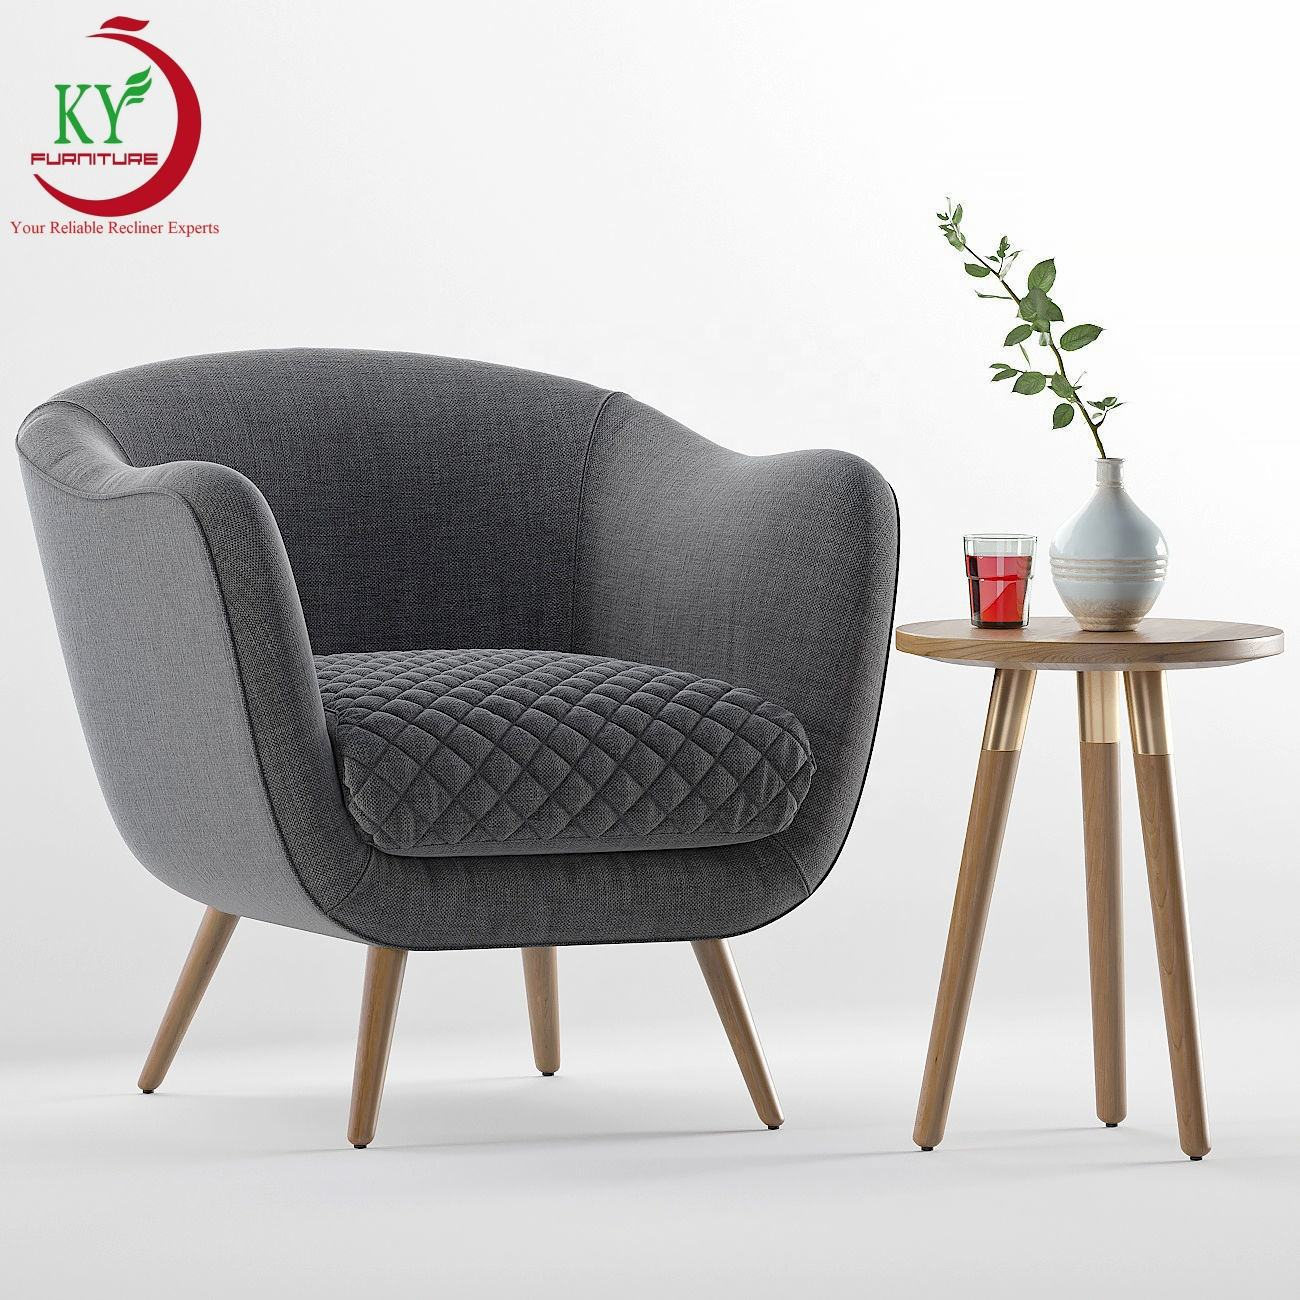 JKY Furniture Modern Design Fabric Accent Tub Chairs with Wooden Legs for Living Room Occasional Armchair